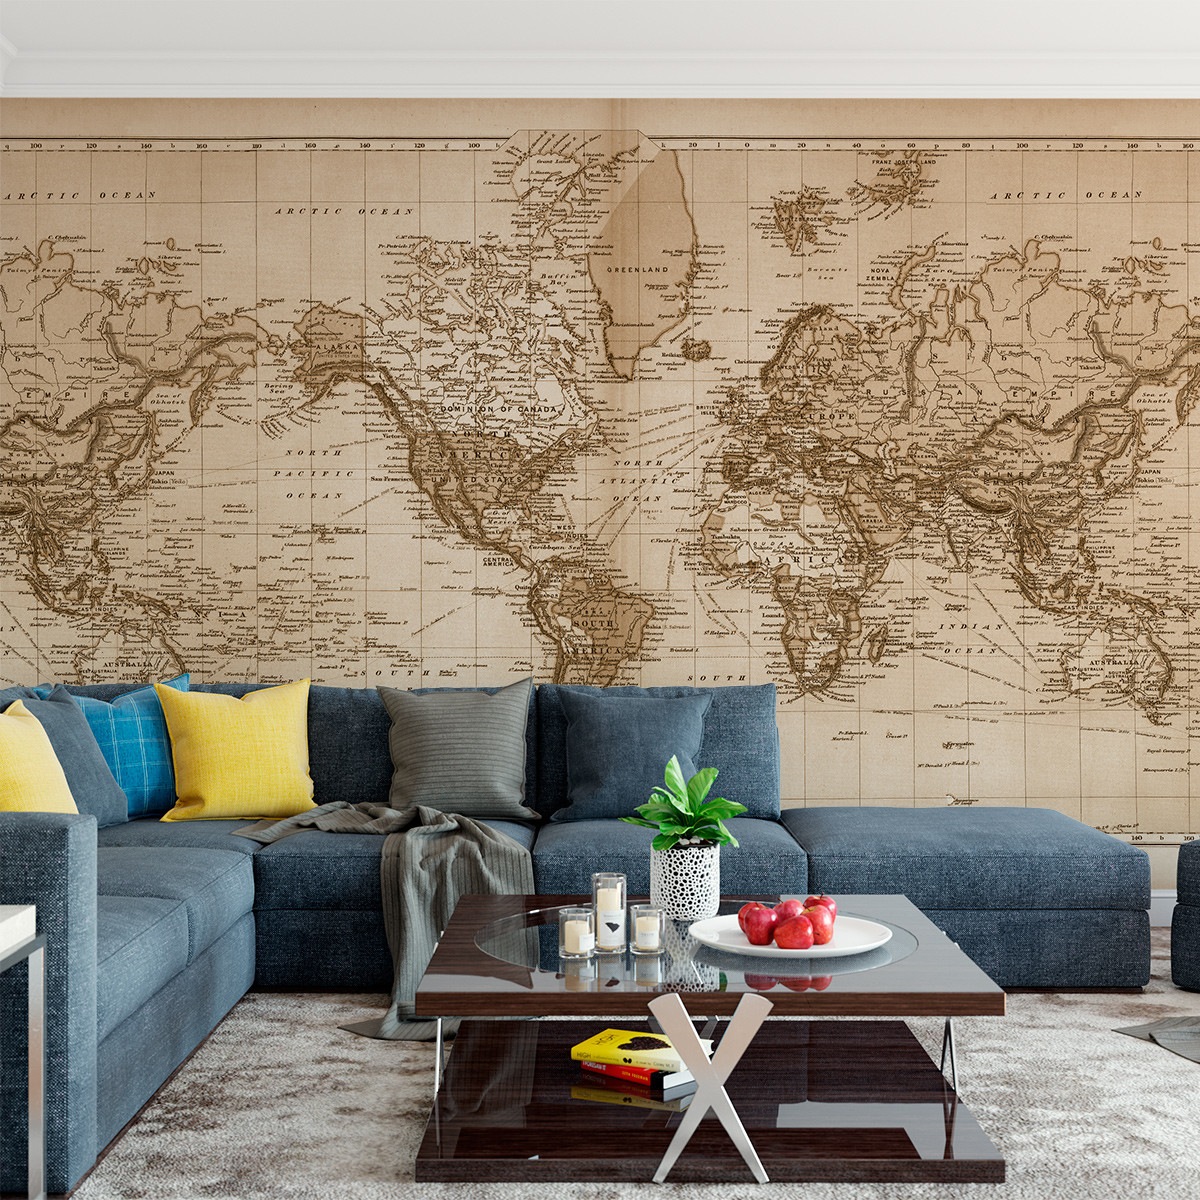 Vintage world atlas map wall mural fabric decal vintage 1891 atlas world map the world mural printed in your choice of wall gumiabroncs Image collections